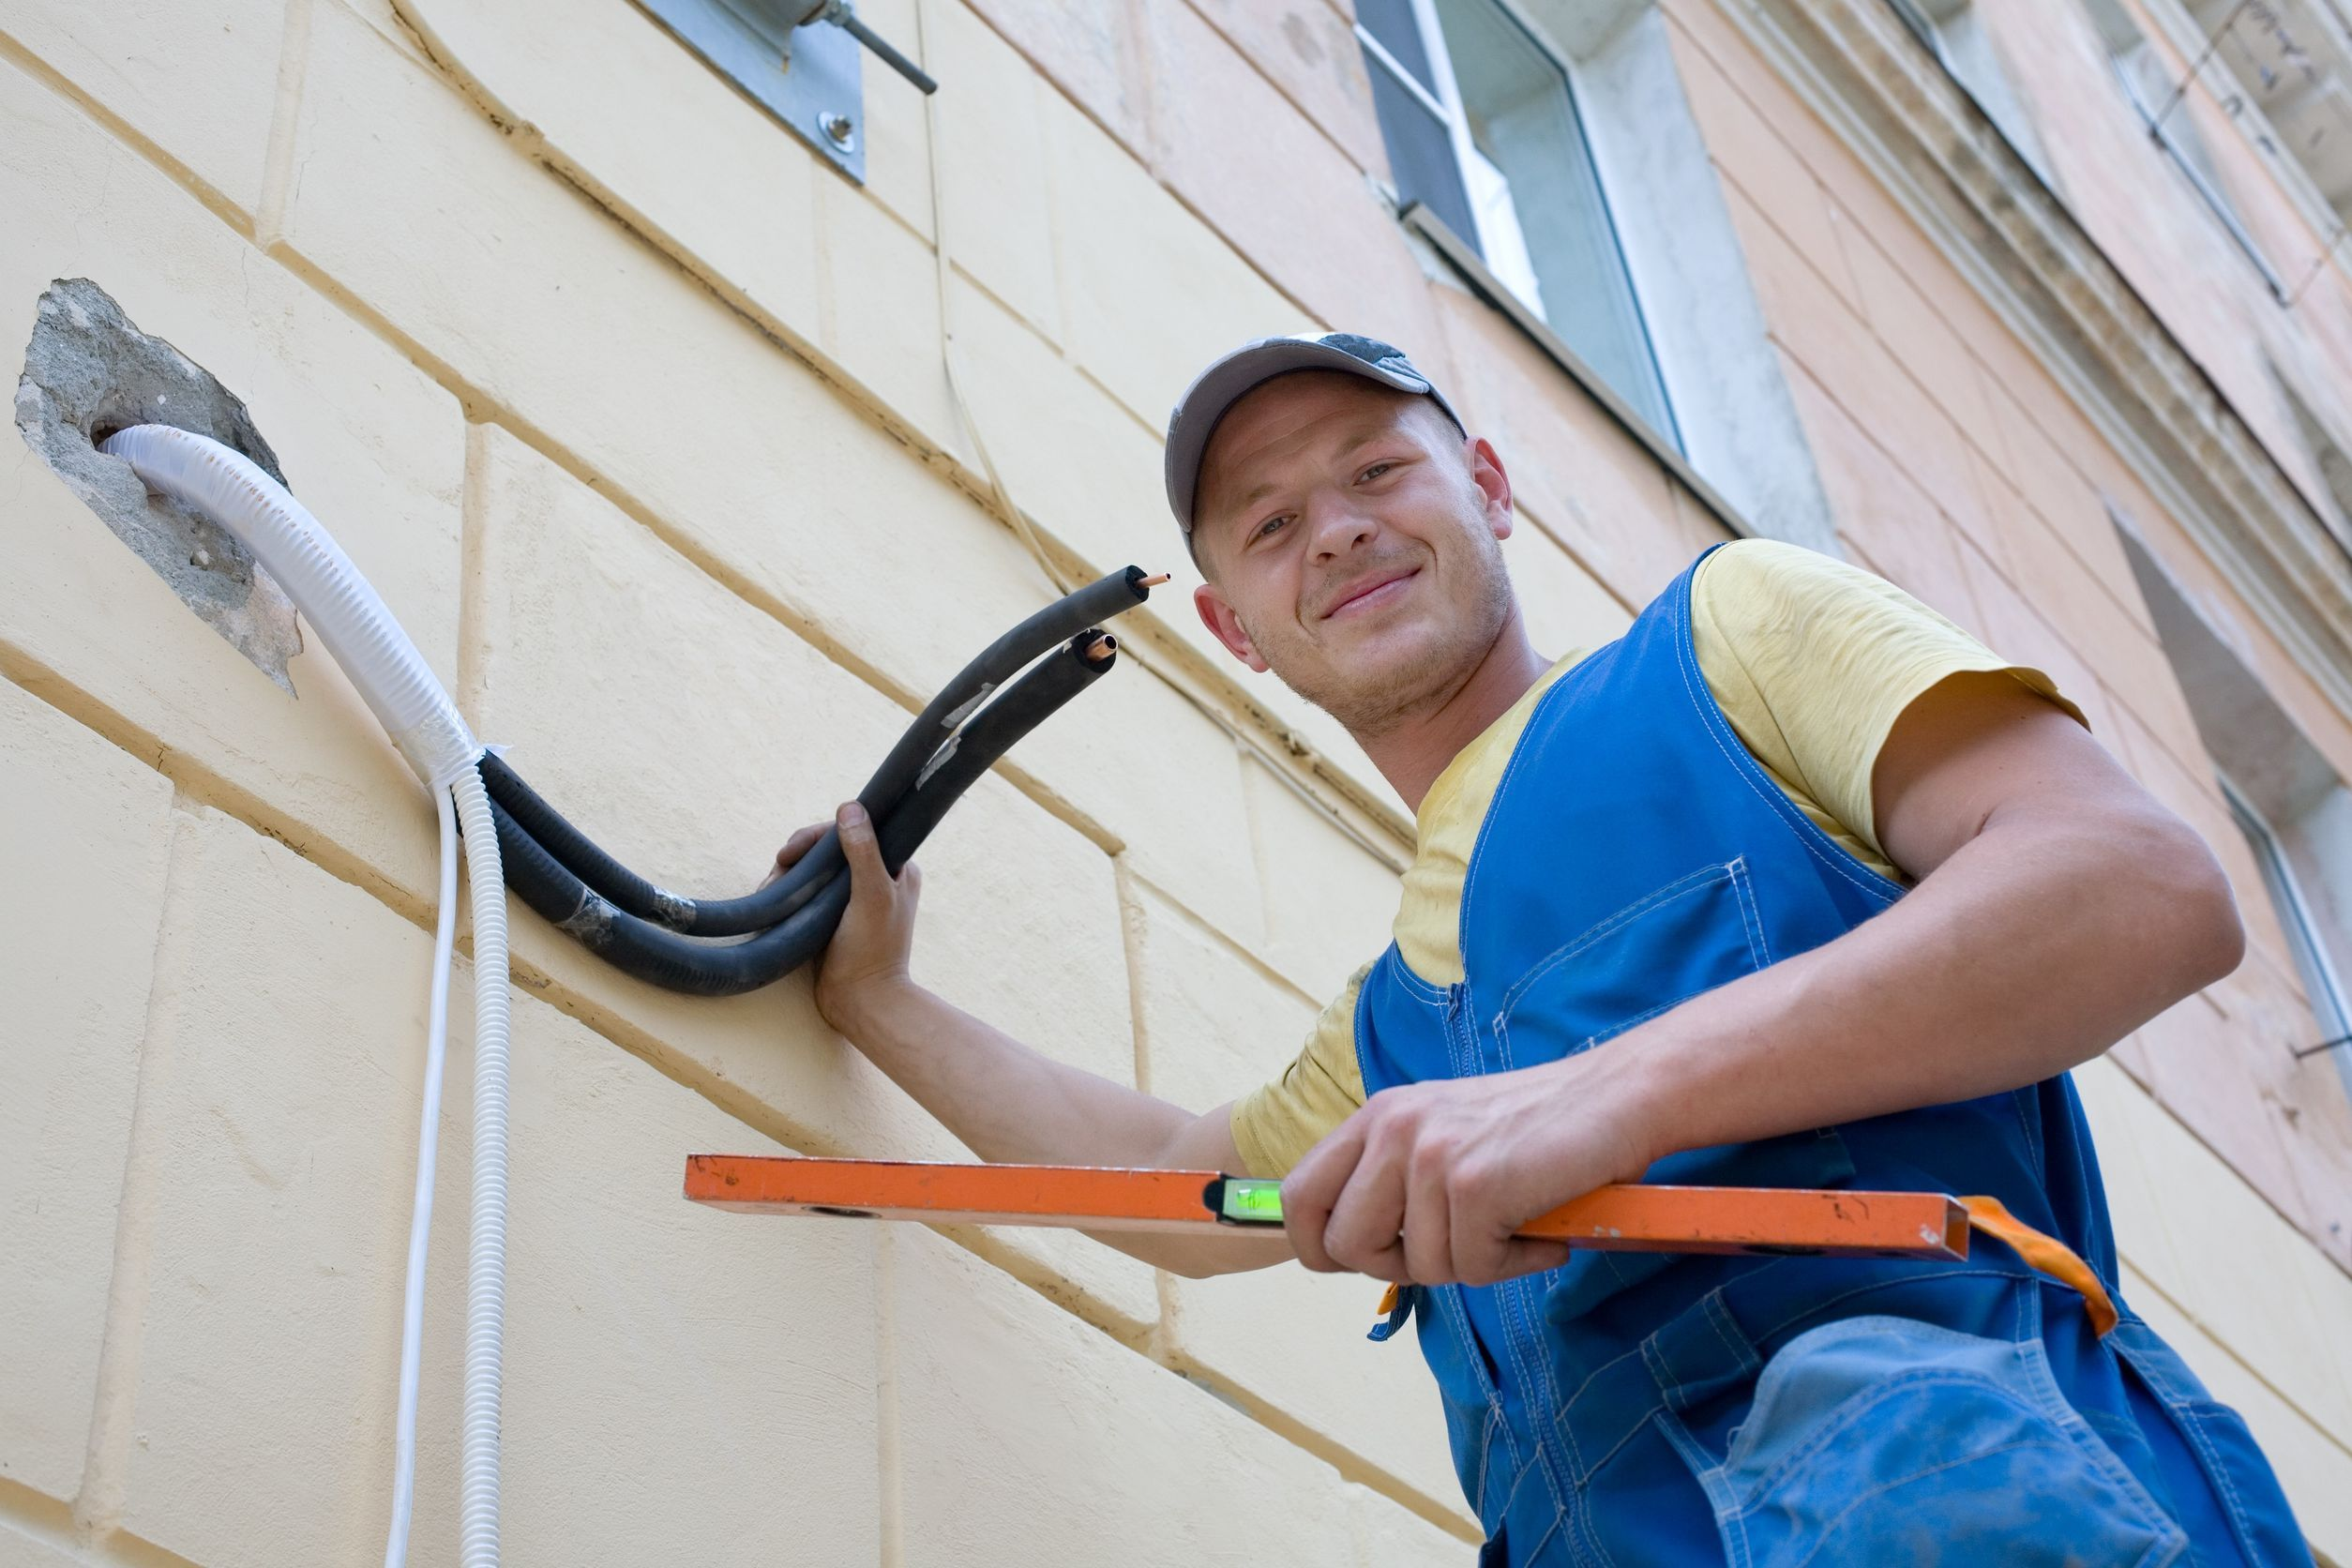 All Year Heating And Ac Repair Maricopa Provides Professional